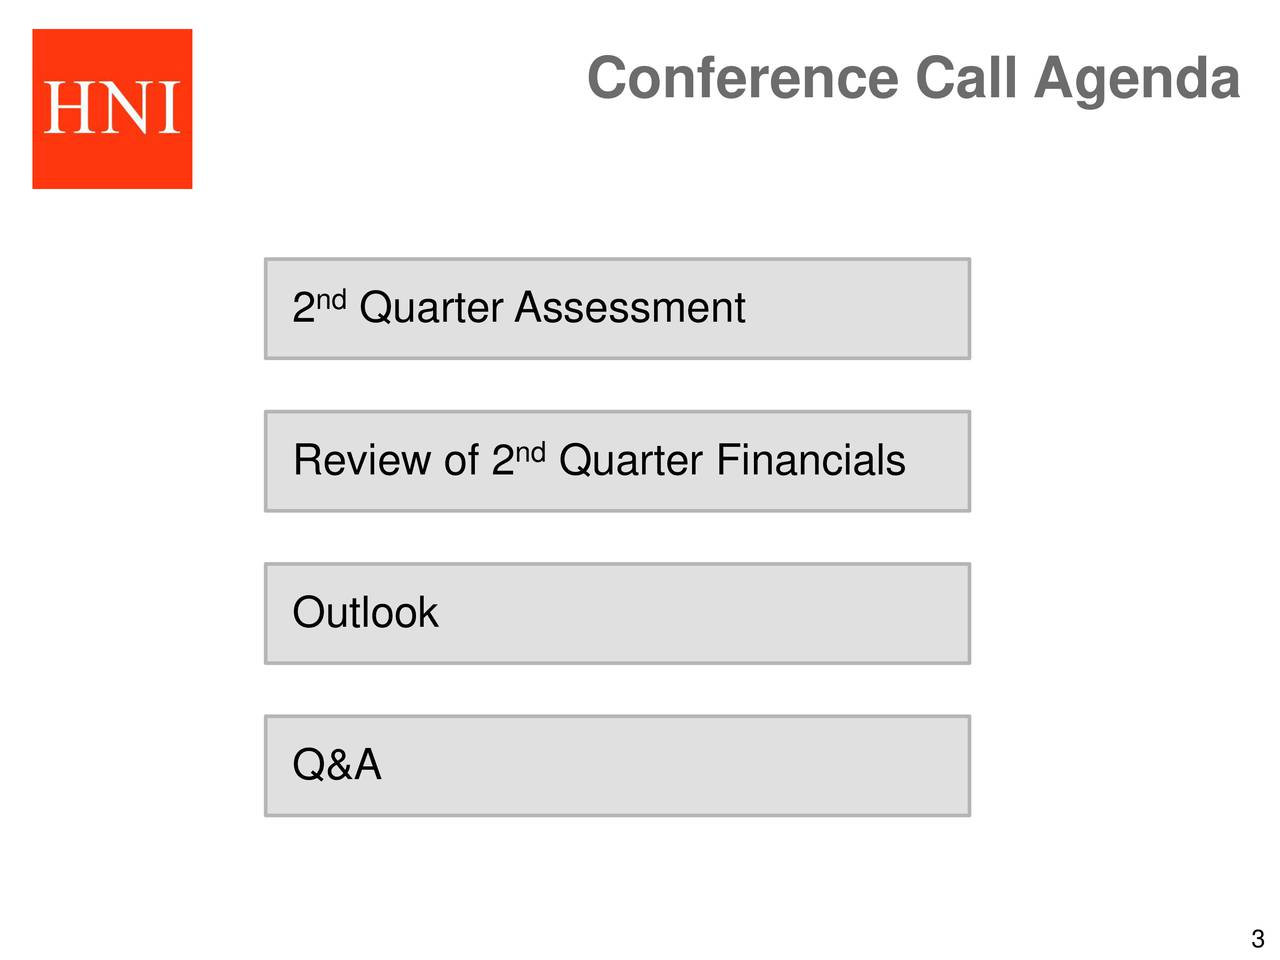 2ndQuarter Assessment Review of 2ndQuarter Financials Outlook Q&A